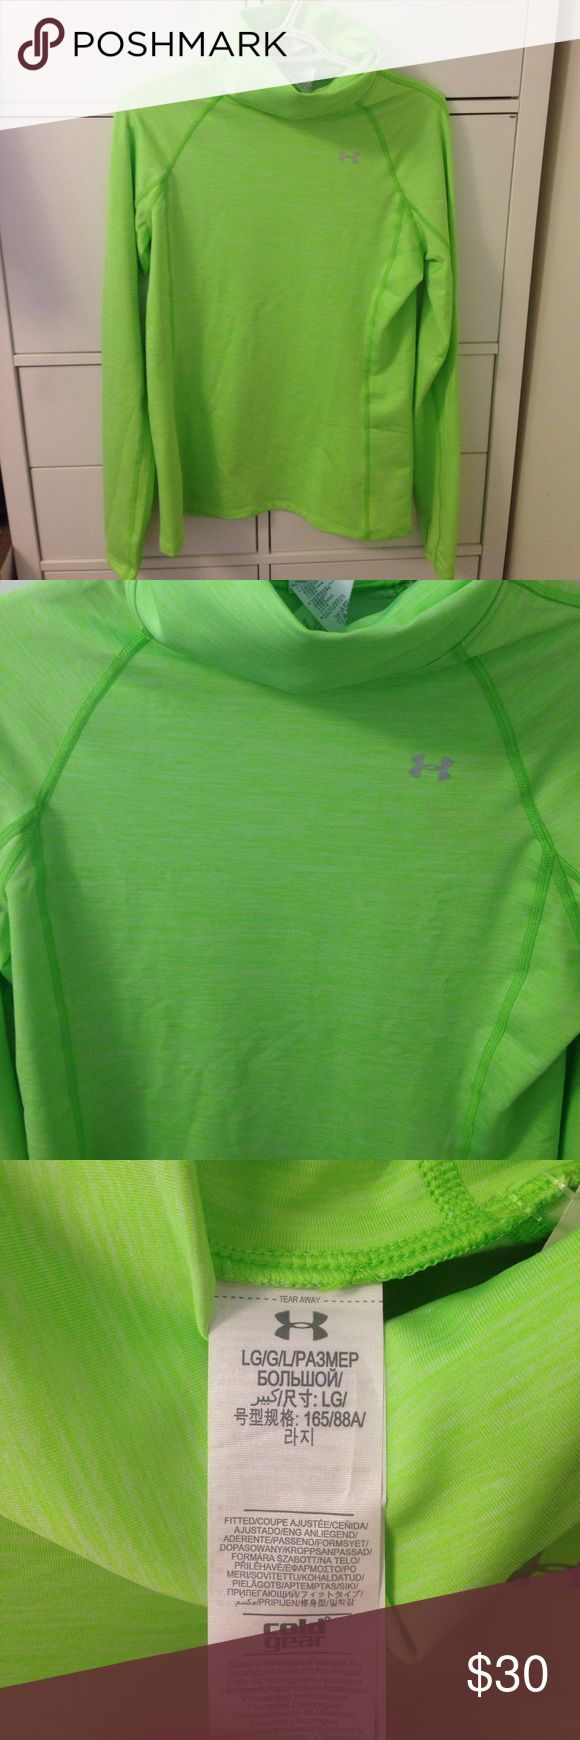 Under Armour Cold Gear Compression Top neon green Under Armour Cold Gear Women's Compression top.  Size Large.  Neon green color. New with tags. Under Armour Tops Sweatshirts & Hoodies